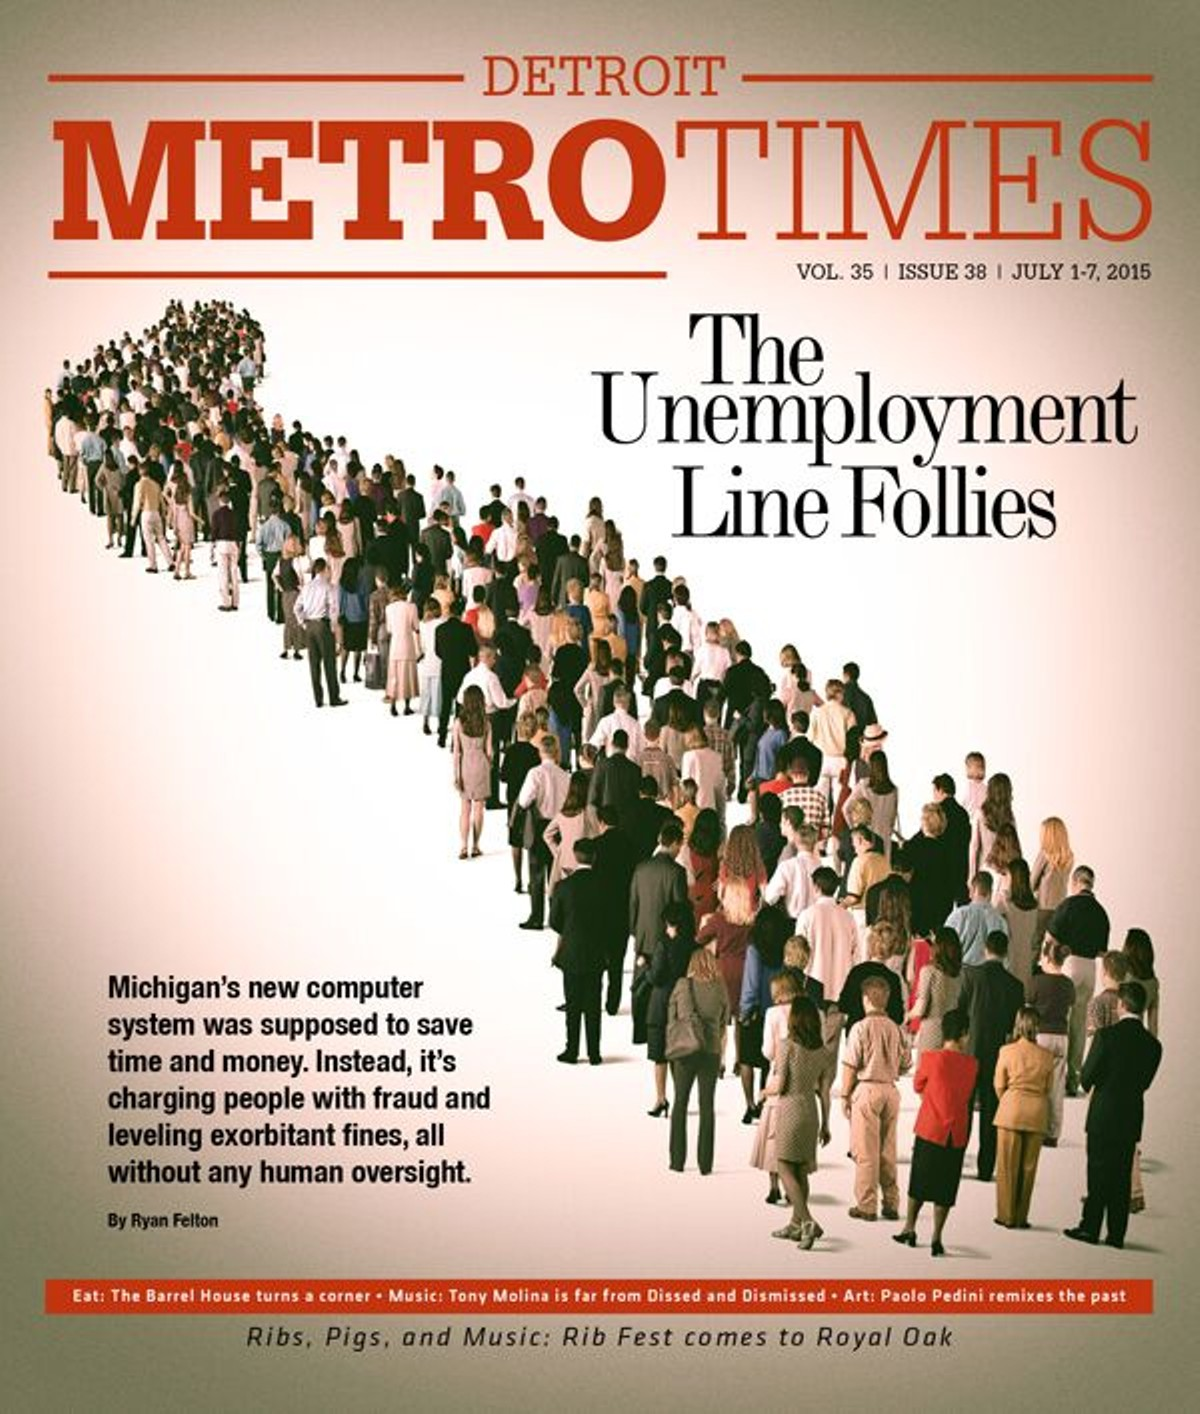 Criminalizing The Unemployed Local News Detroit Detroit Metro Times